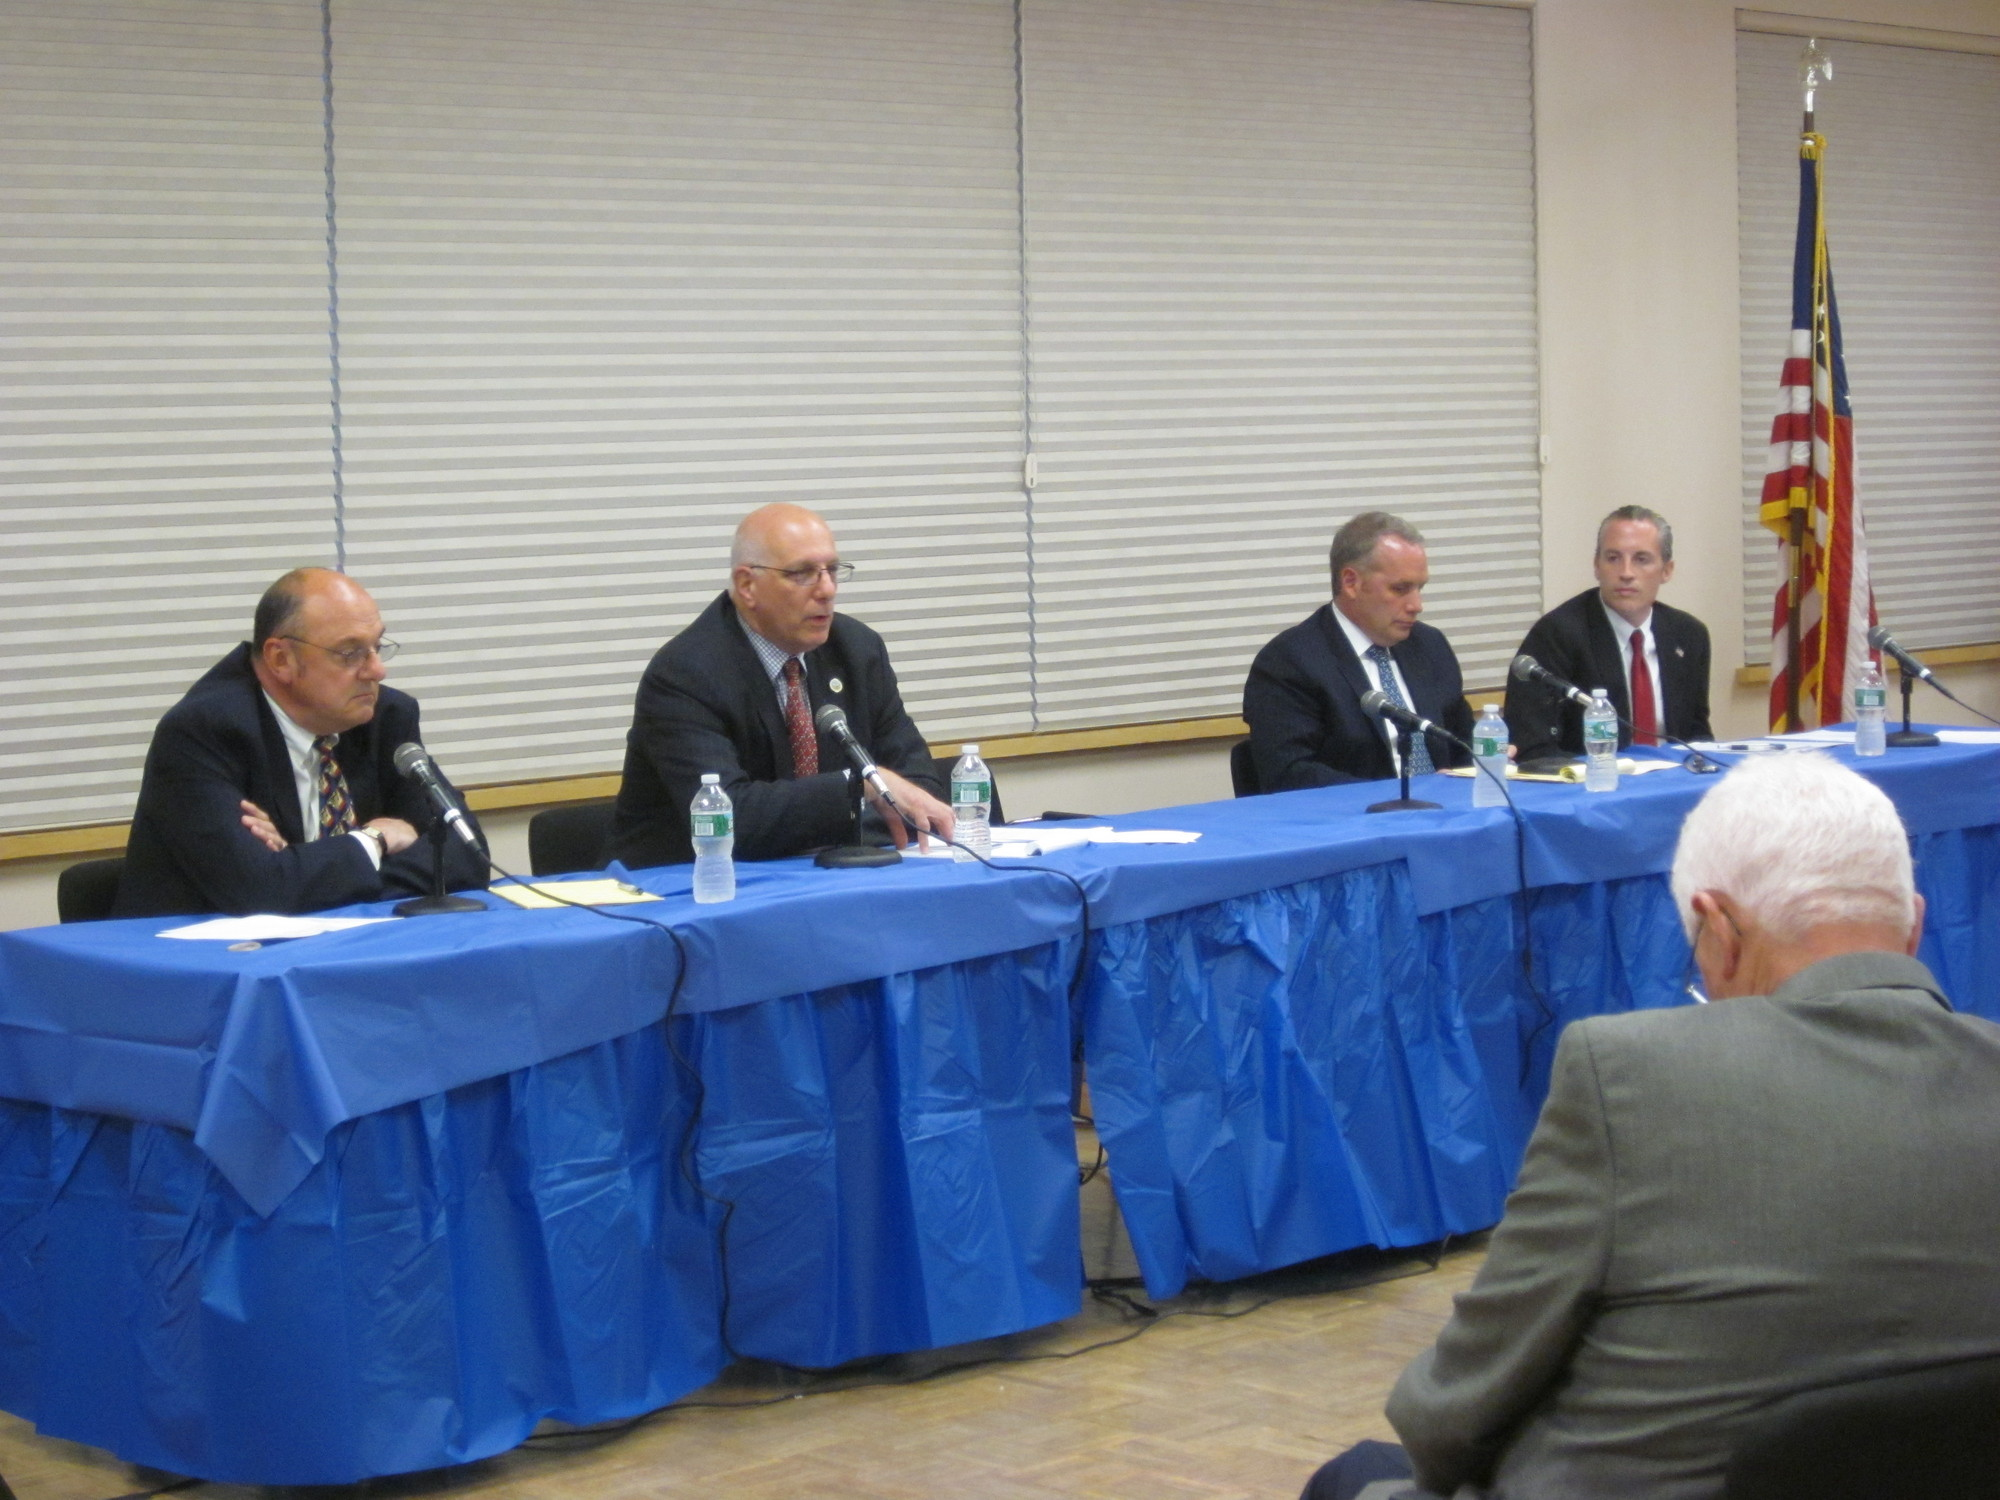 Candidates Mark Wieman, far left, Edward Oppenheimer, Emilio Grillo and Kevin Glynn discussed and debated their policies at the Sandel Senior Center Monday night.